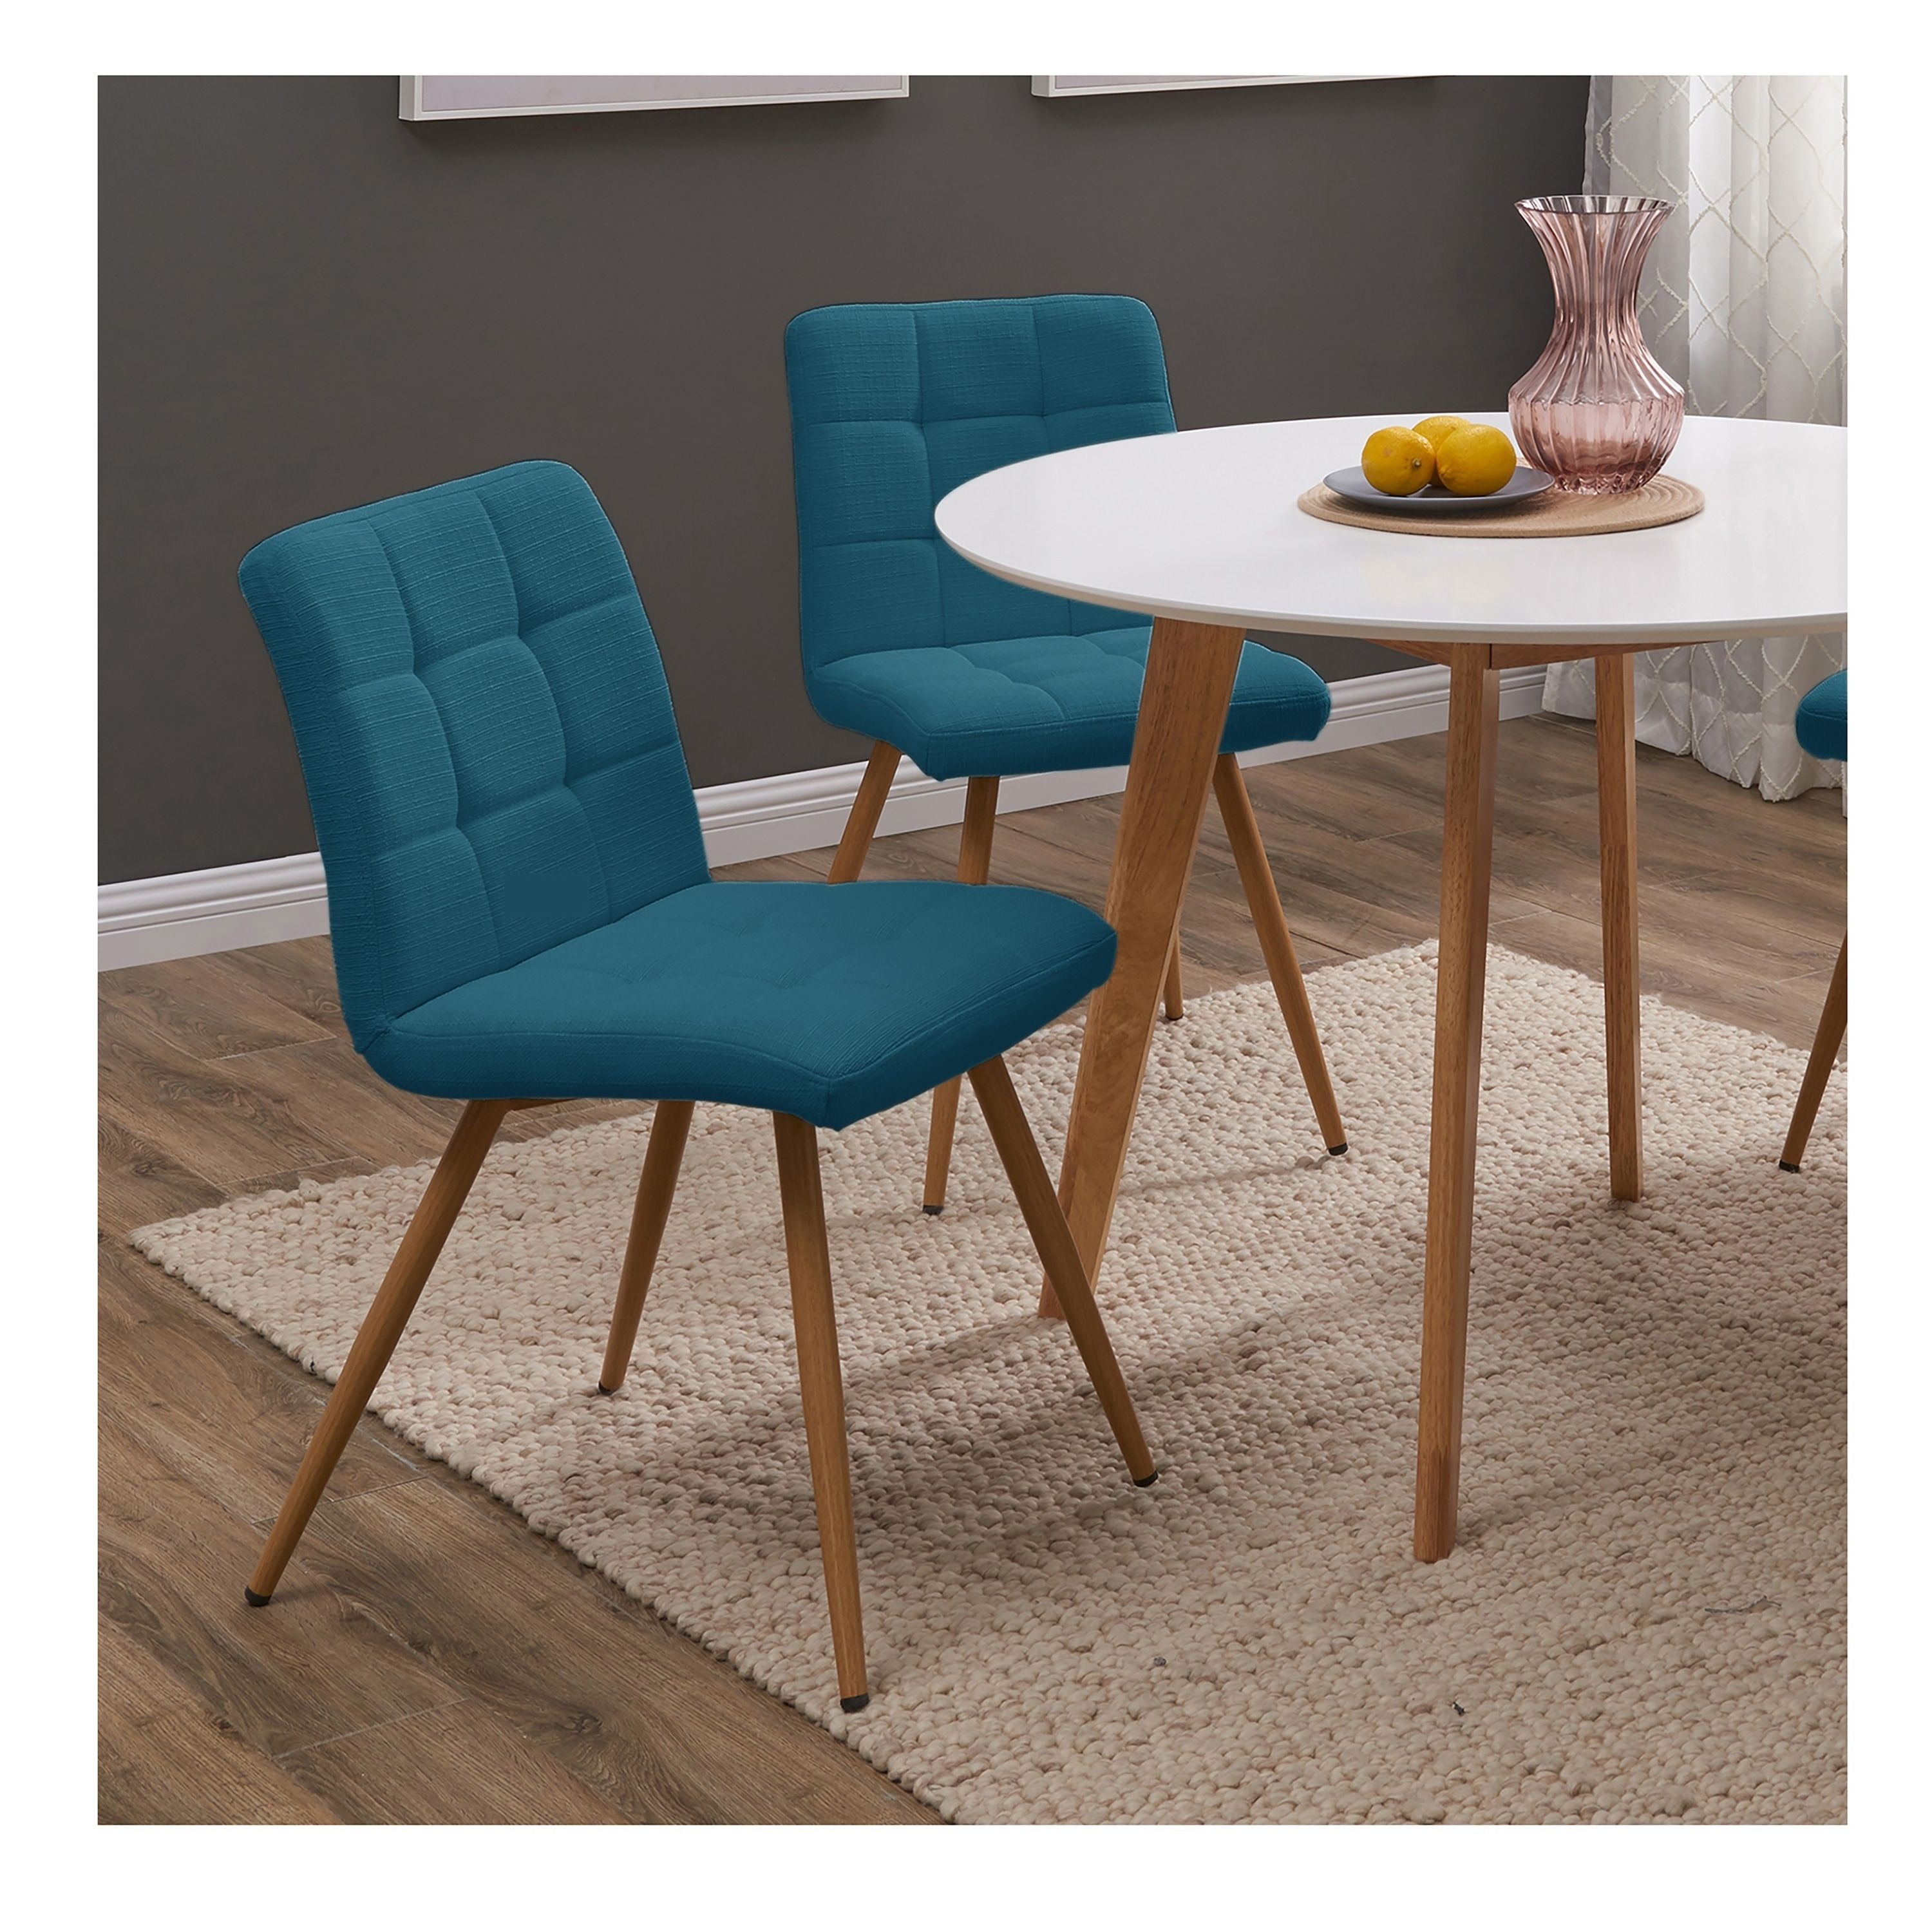 Blue Dining Chairs Handy Living Manzanola Peacock Blue Linen Armless Upholstered Dining Chairs Set Of 4